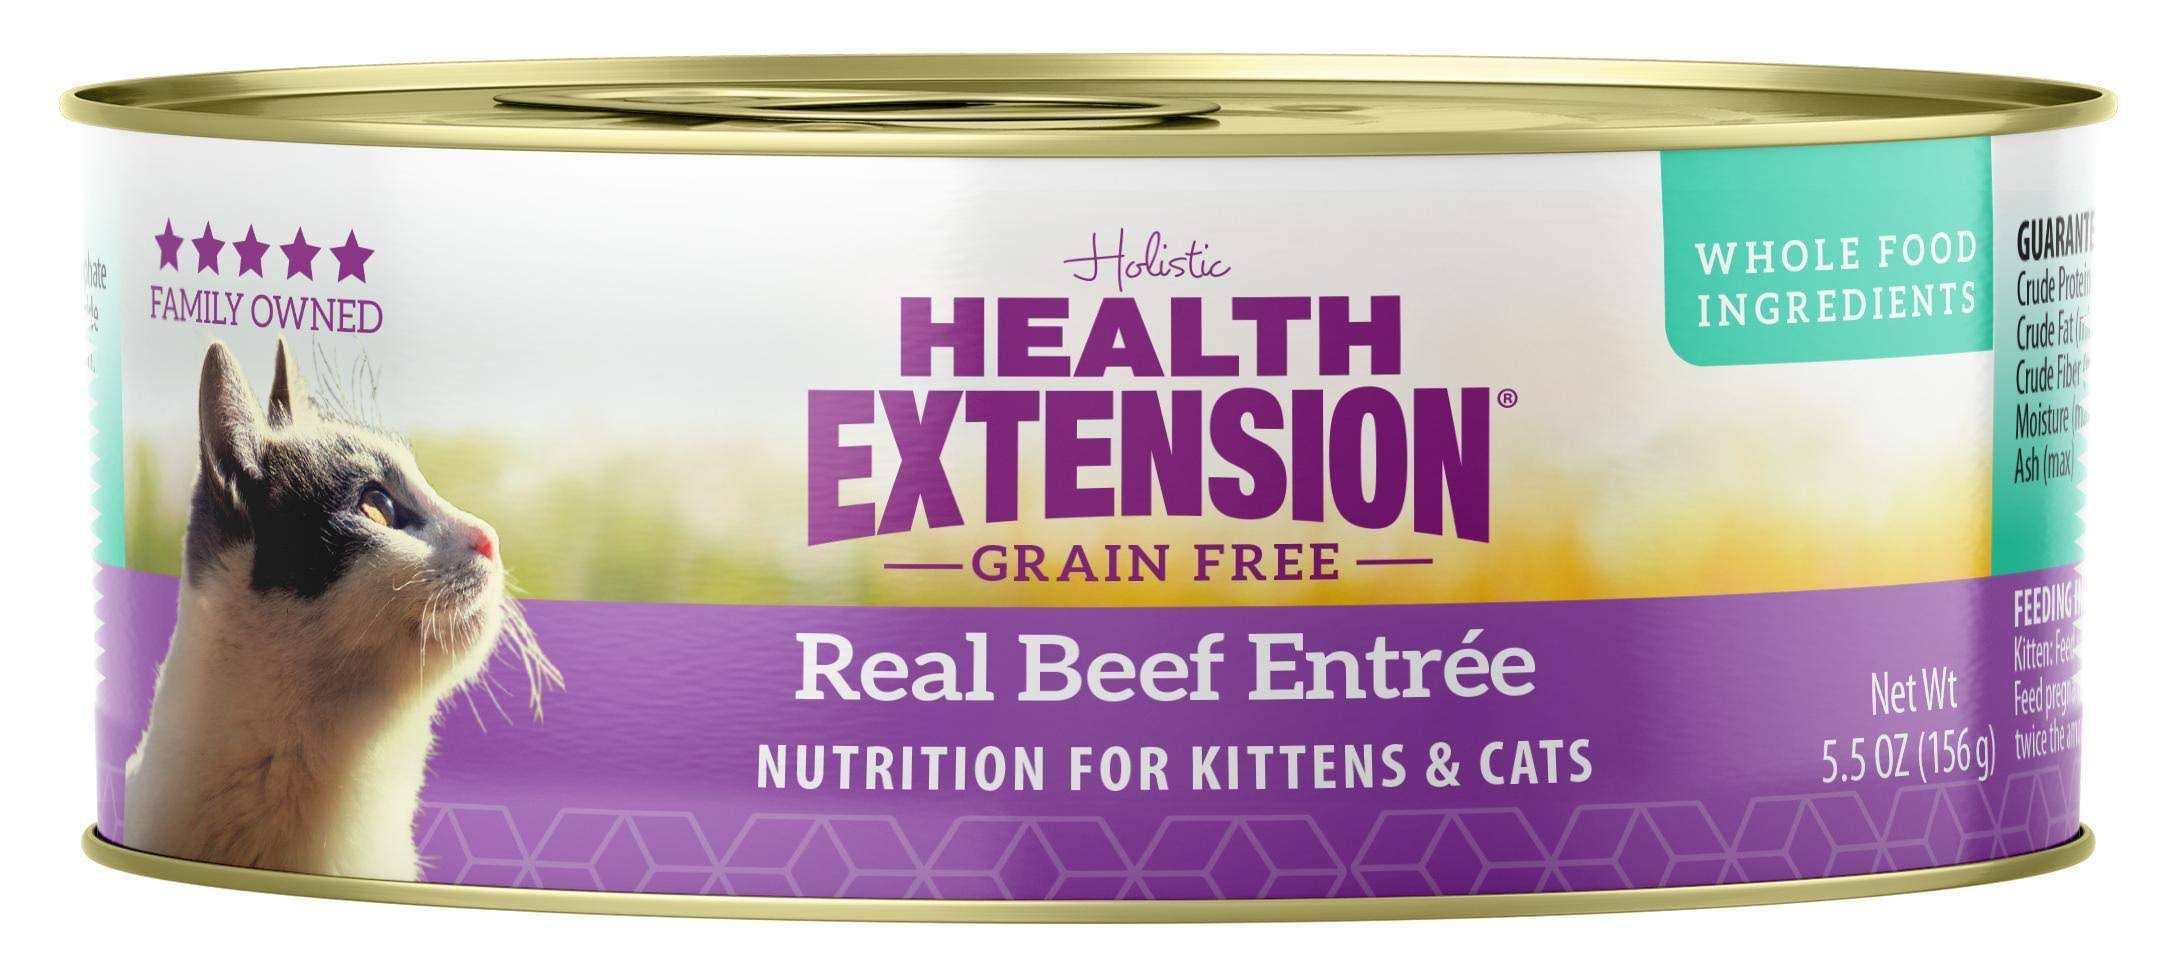 Health Extension Beef Entree Canned Cat Food - 5.5 oz, Case of 24